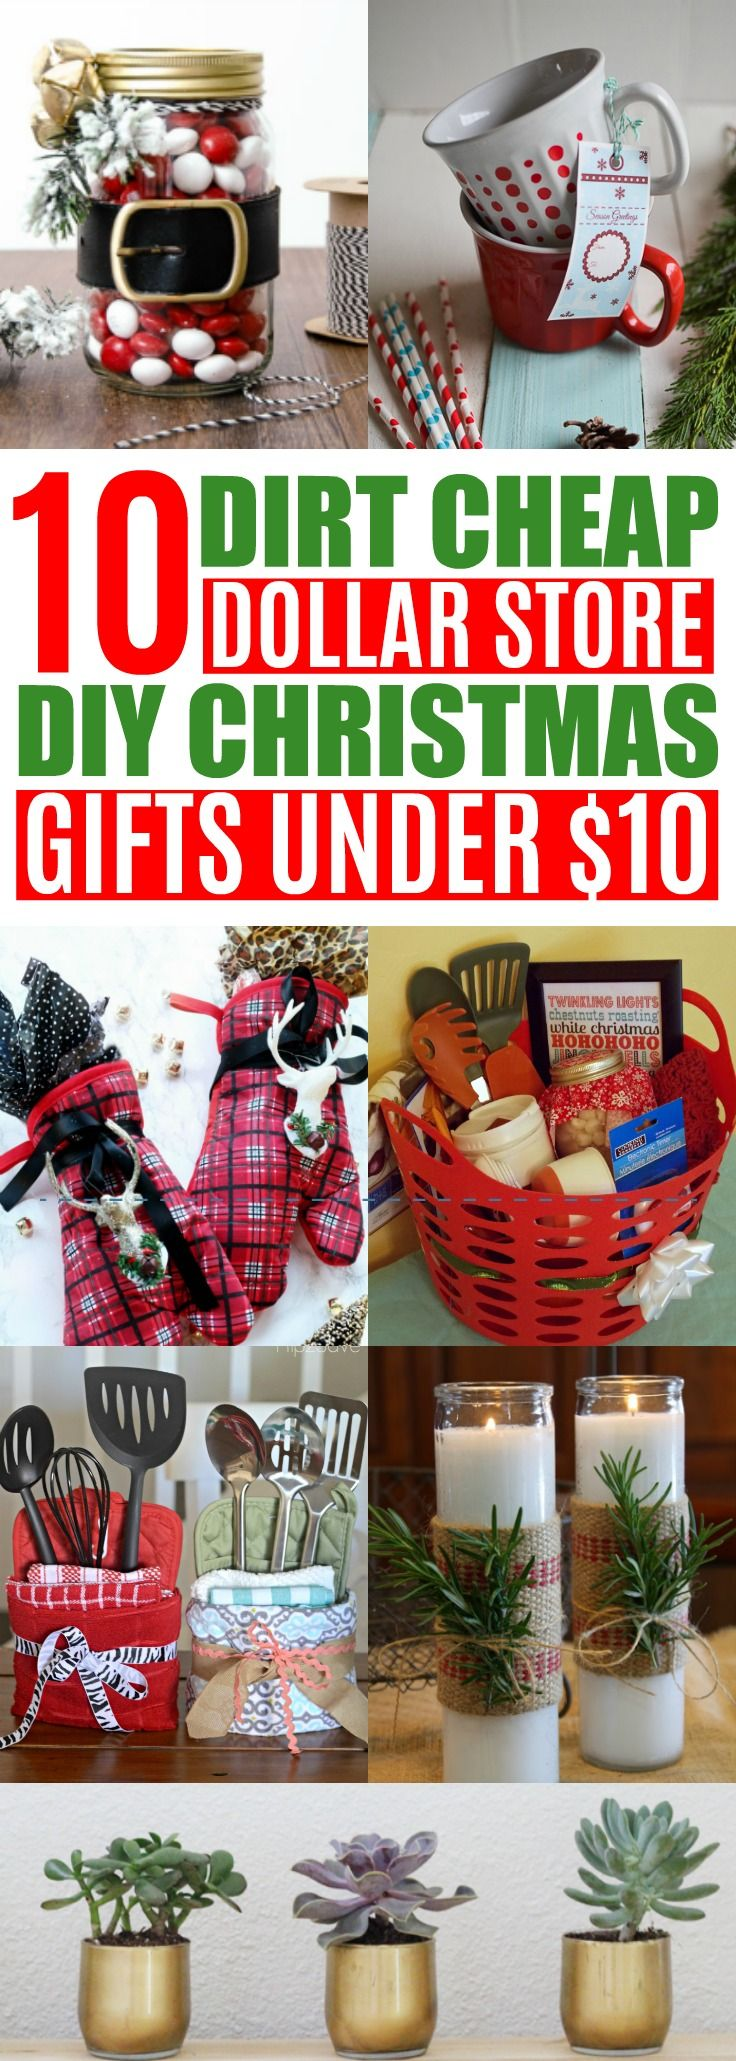 10 diy cheap christmas gift ideas from the dollar store under 10 christmas pinterest christmas gifts christmas and cheap christmas gifts